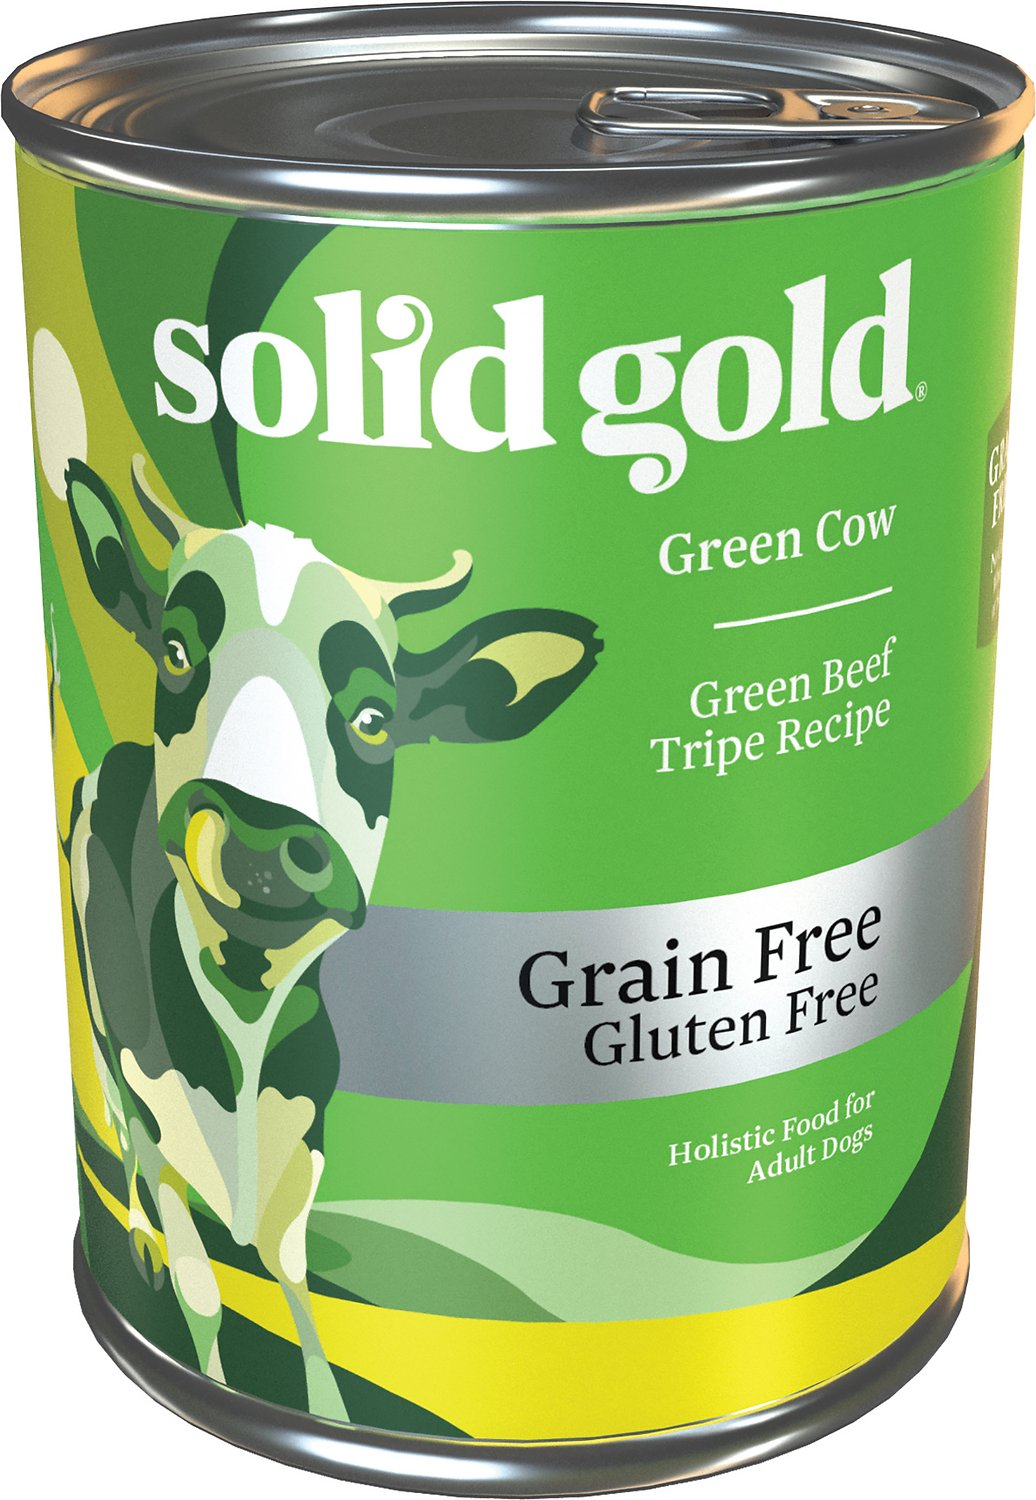 Solid Gold Green Cow Wet Dog Food